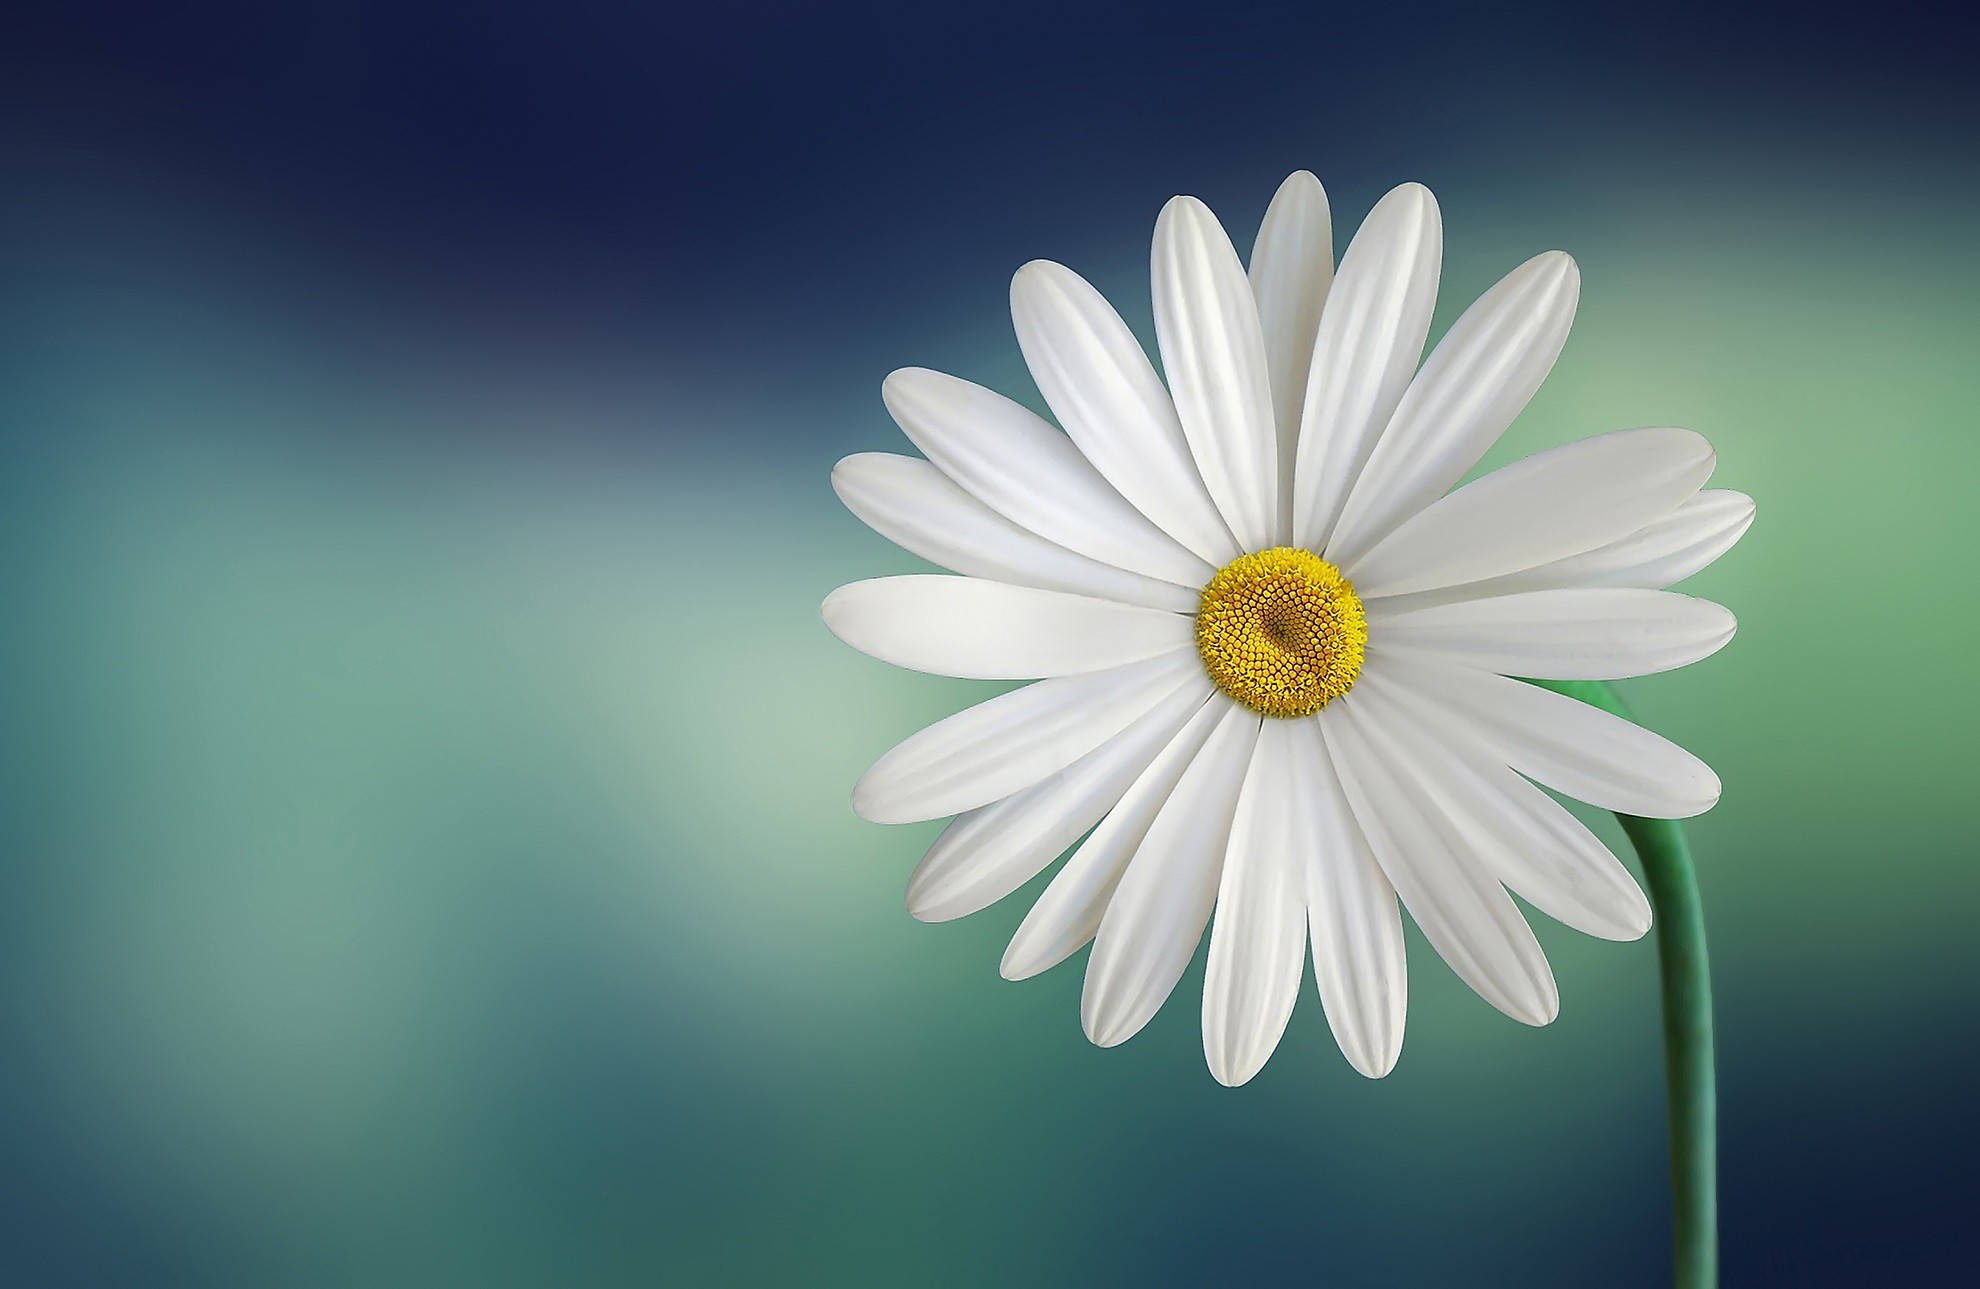 White and Yellow Flower With Green Stems